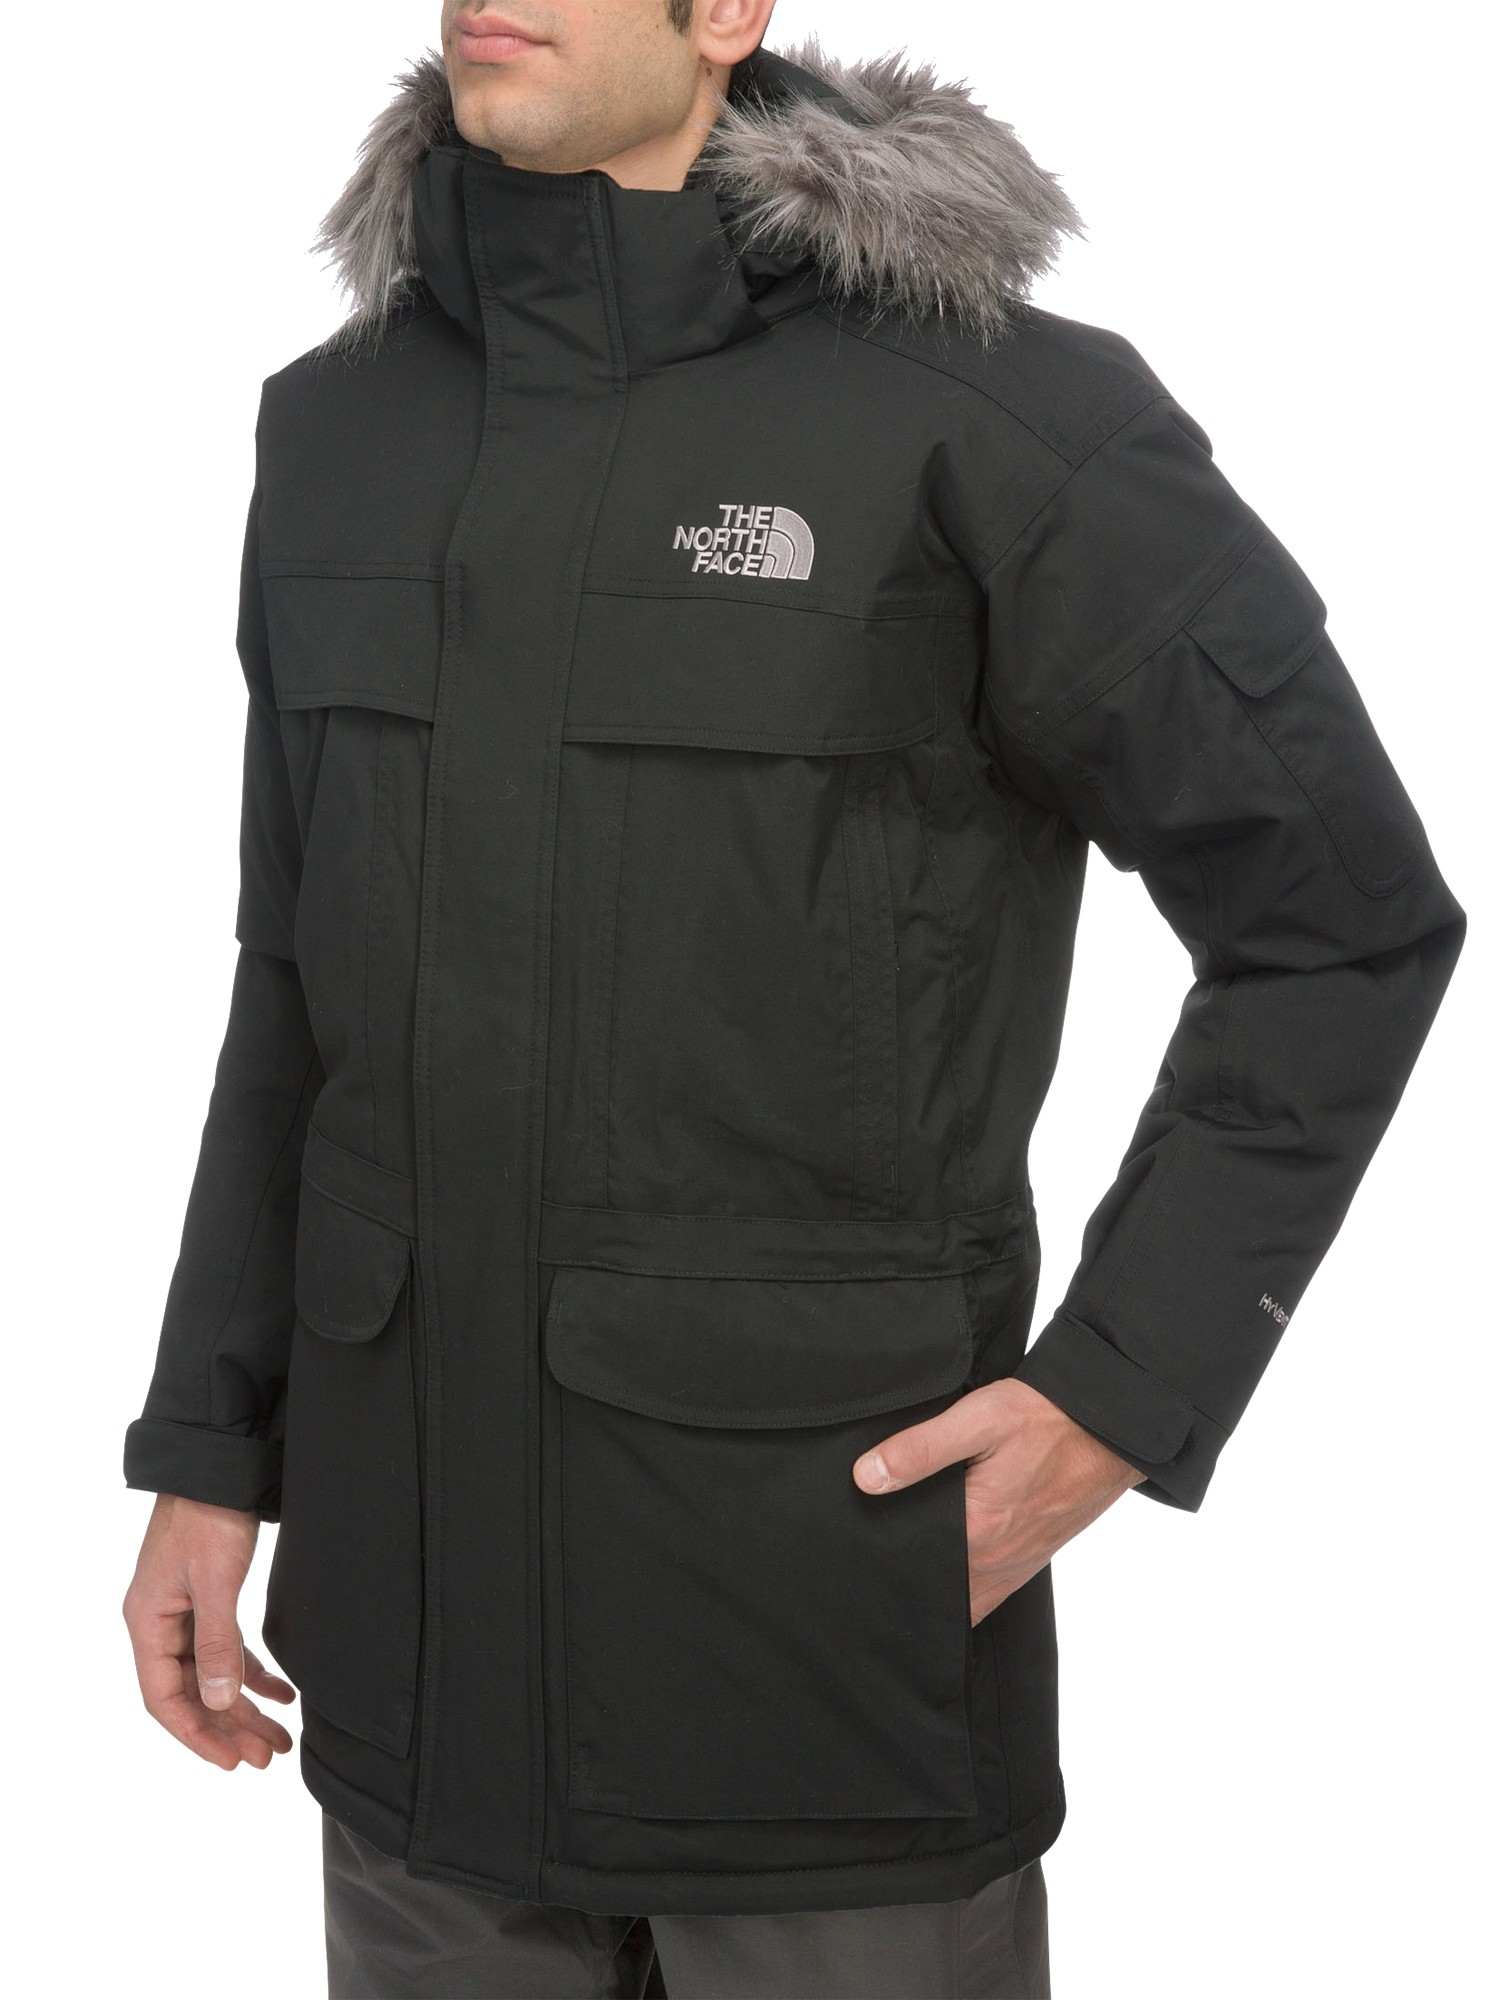 the north face men 39 s mcmurdo parka jacket in black for men lyst. Black Bedroom Furniture Sets. Home Design Ideas